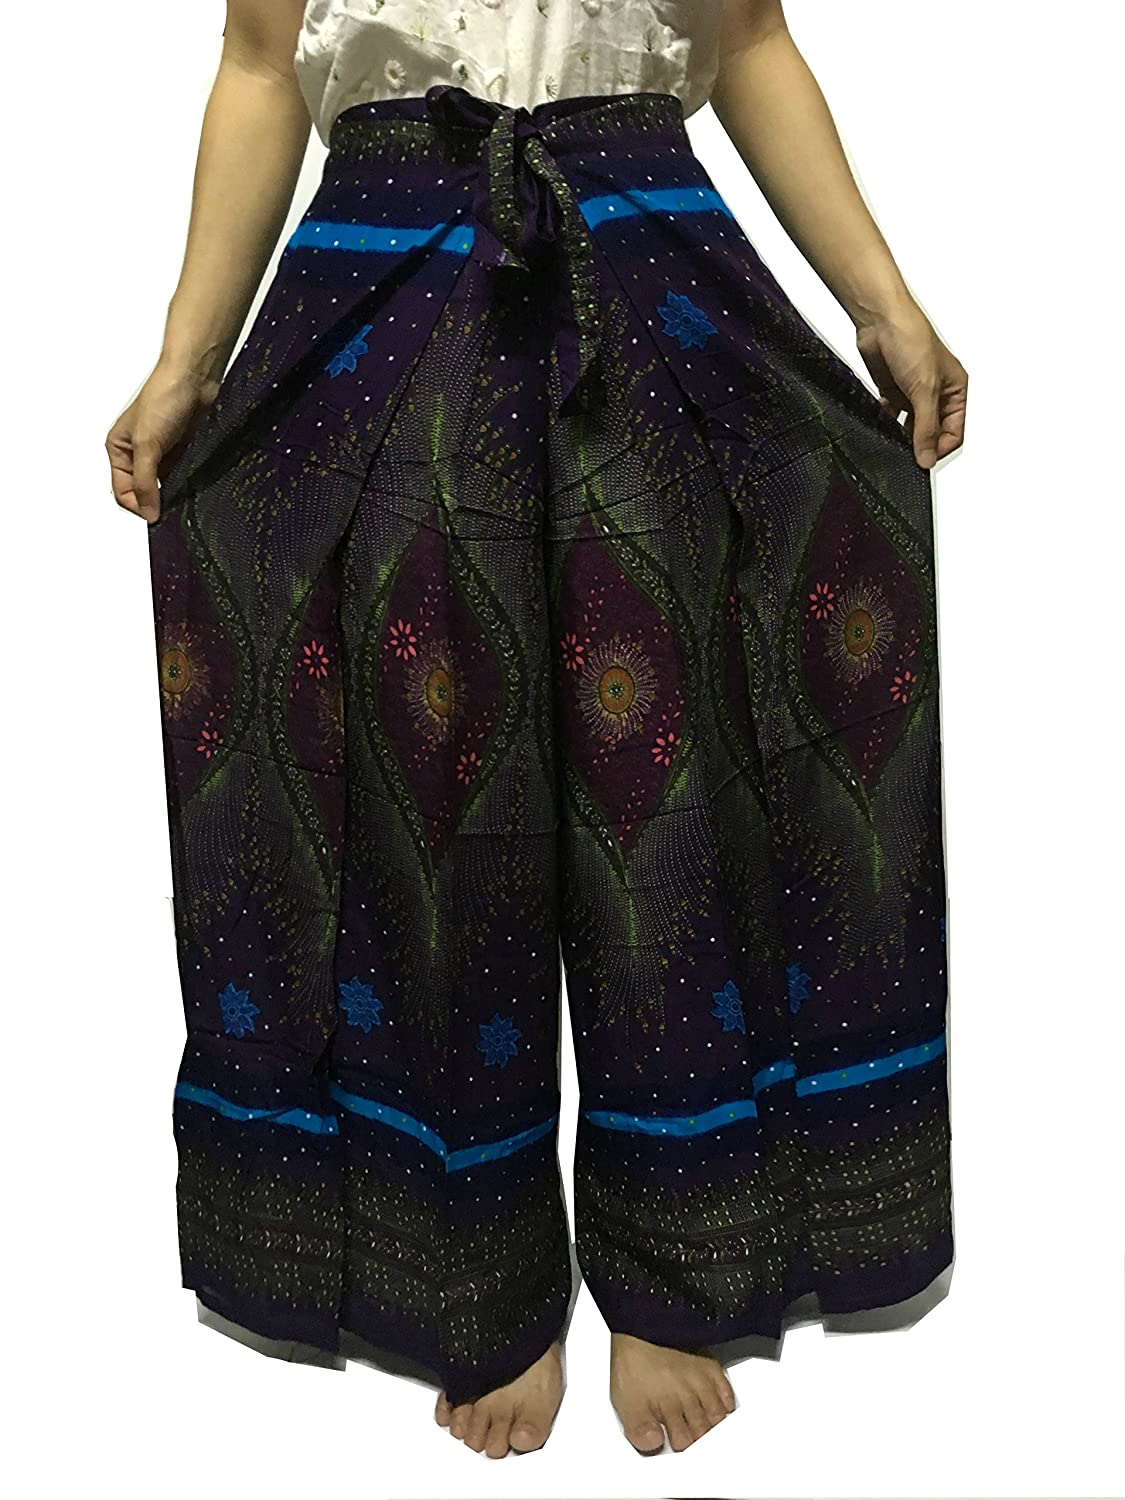 eb5504c7e3d Amazon.com   The Loosefit Thai Wrap Palazzo Pants Wide Open Legs Boho Yoga  Green Navy Blue Feather   Sports   Outdoors